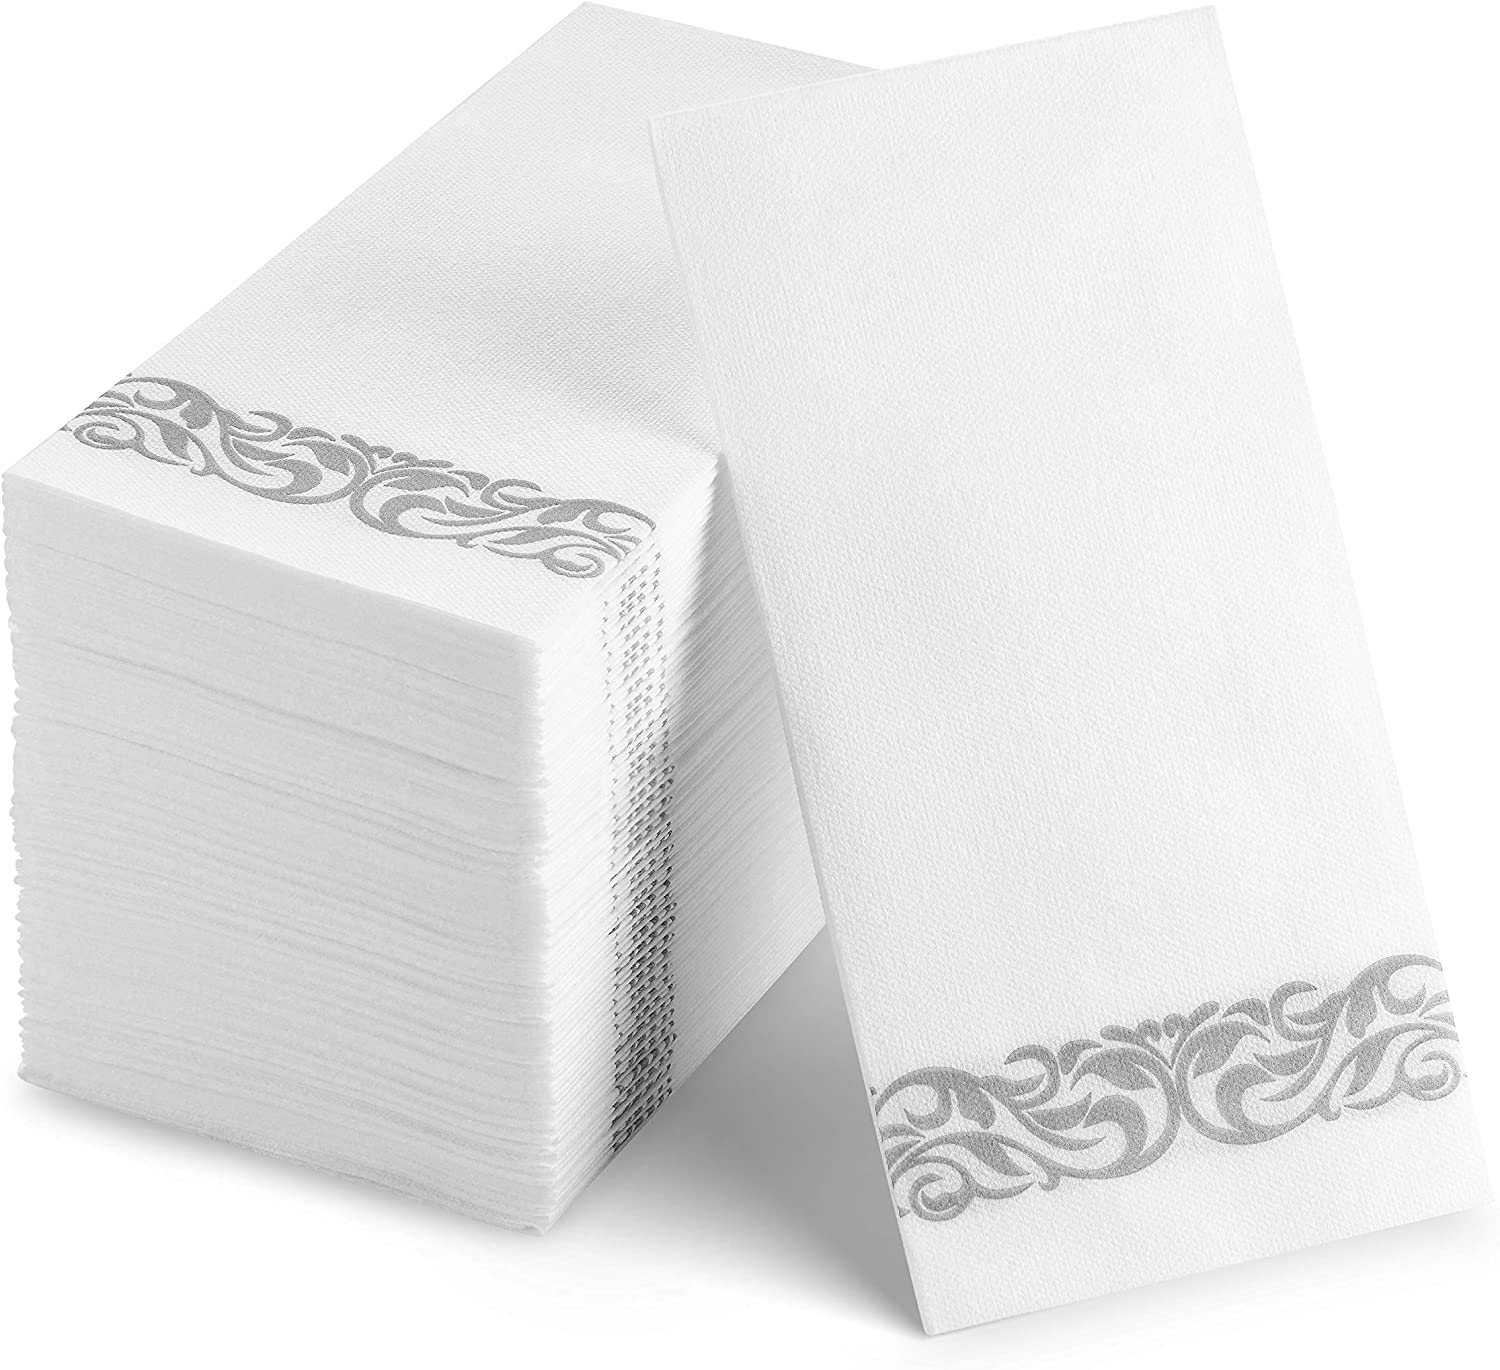 100 Disposable Guest Towels Soft and Absorbent Linen-Feel Paper Hand Towels Durable Decorative Bathroom Hand Napkins Good for Kitchen, Parties, Weddings, Dinners or Events White and Silver